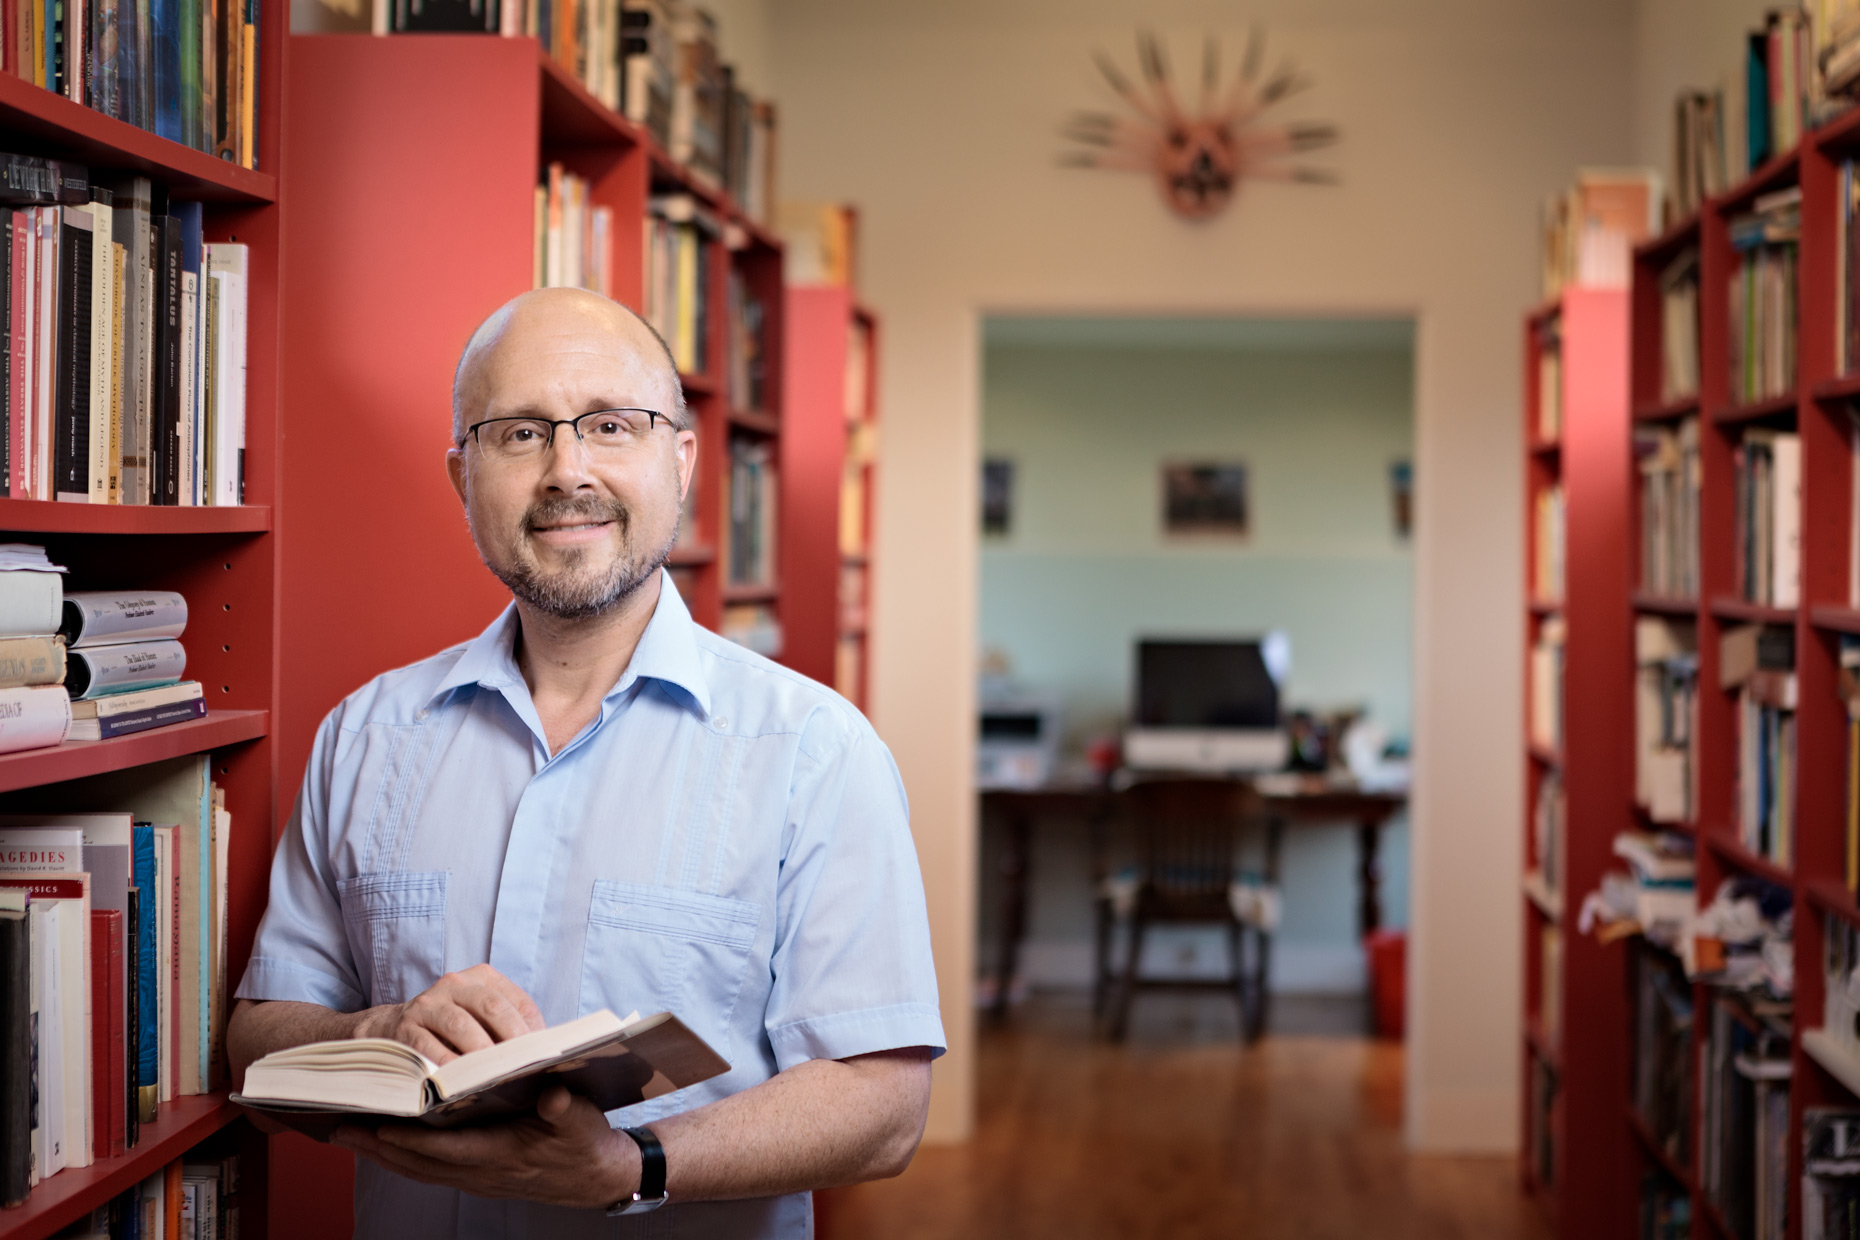 Man with book standing in home library.